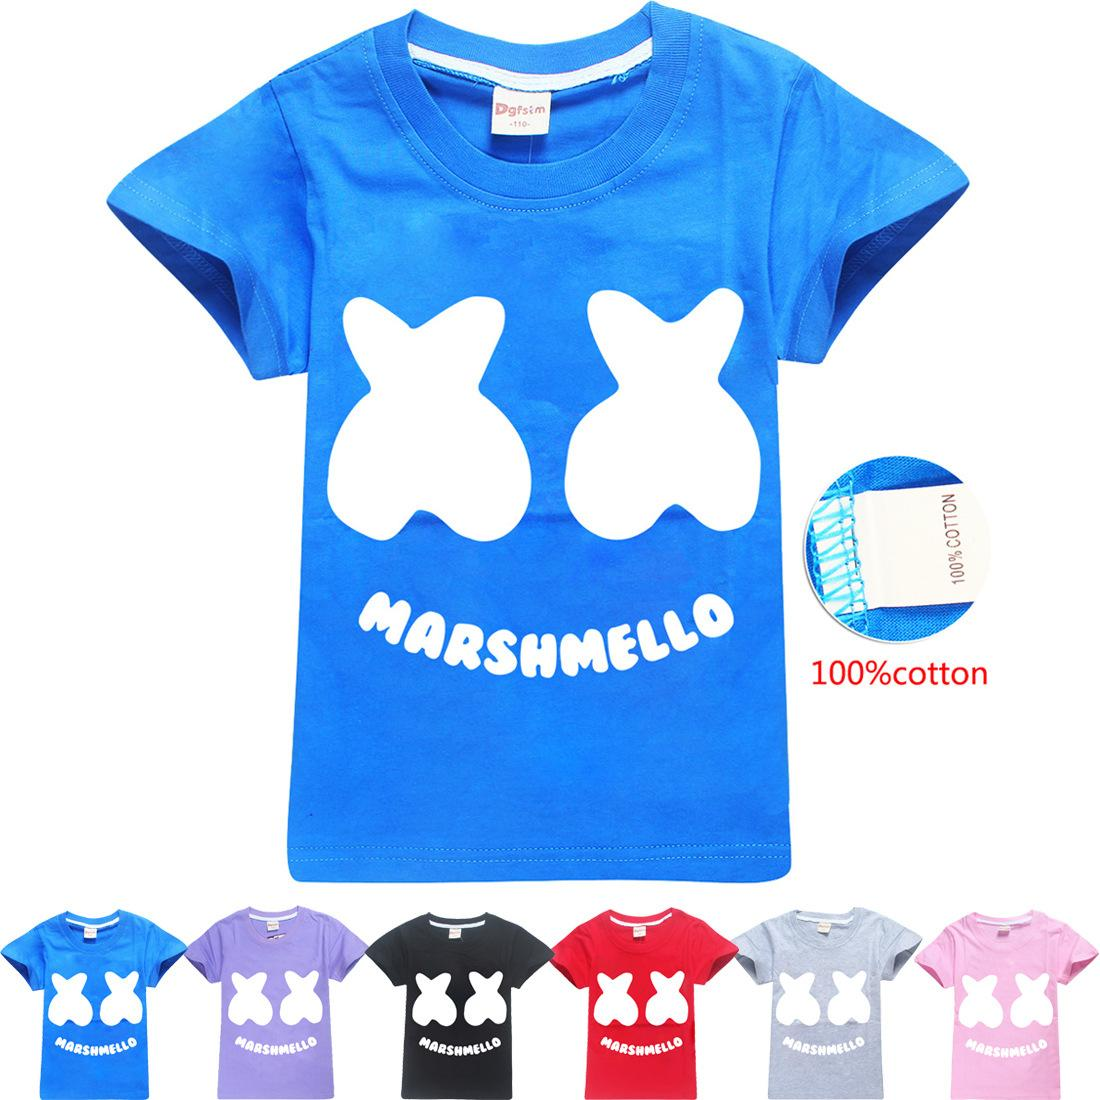 7097e73d06 Baby boys girls Marshmello T Shirt DJ Music cotton T-shirt for summer  children wear kids cute casual clothes DHL fast shipping free